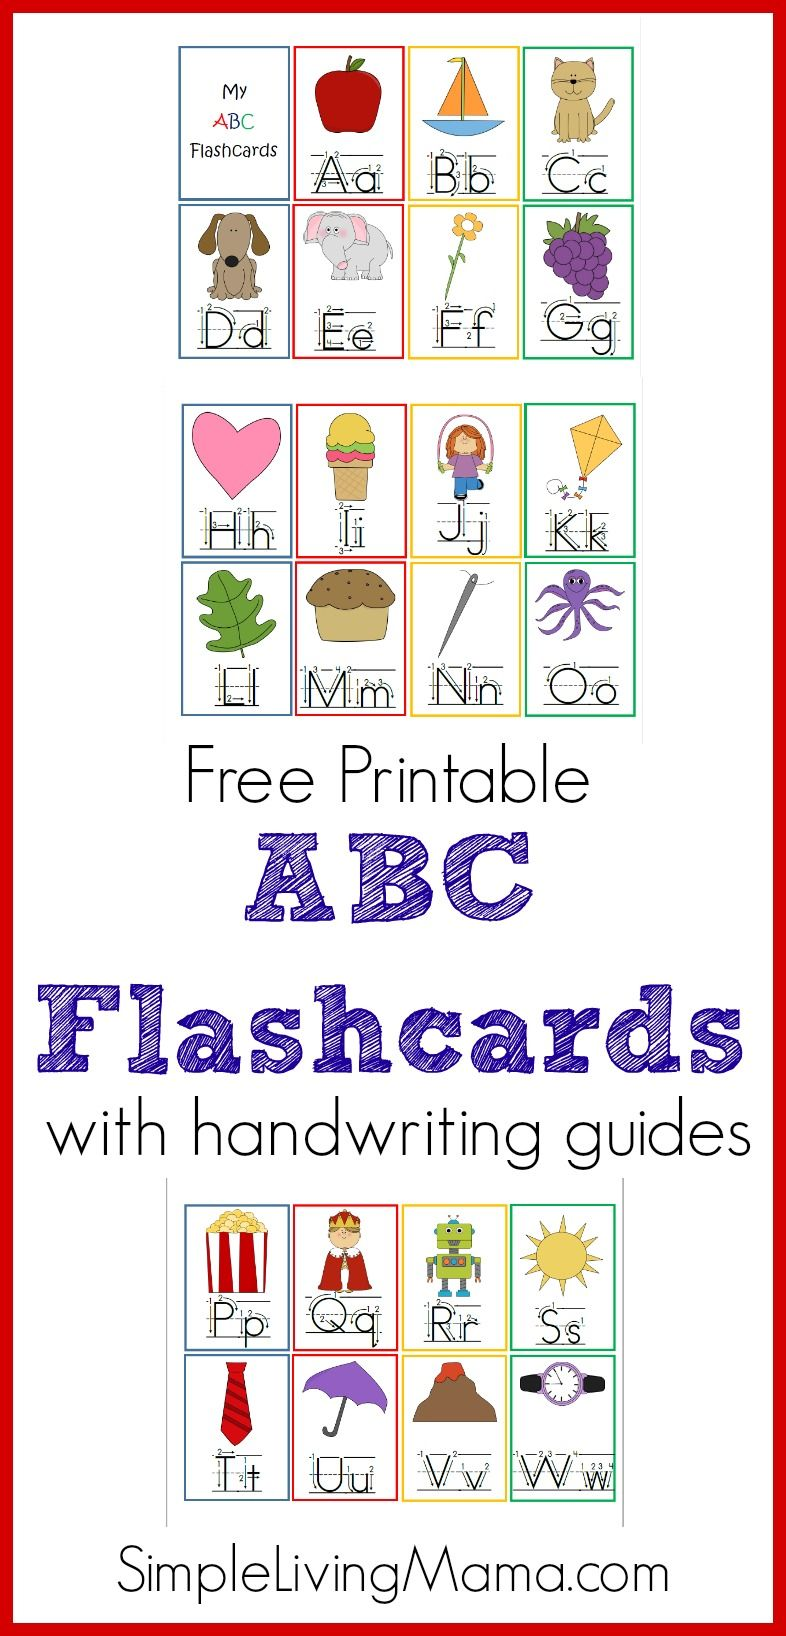 graphic relating to Printable Abc Flash Cards Preschoolers titled Printable ABC Flashcards for Preschoolers The Neighborhood BOARD